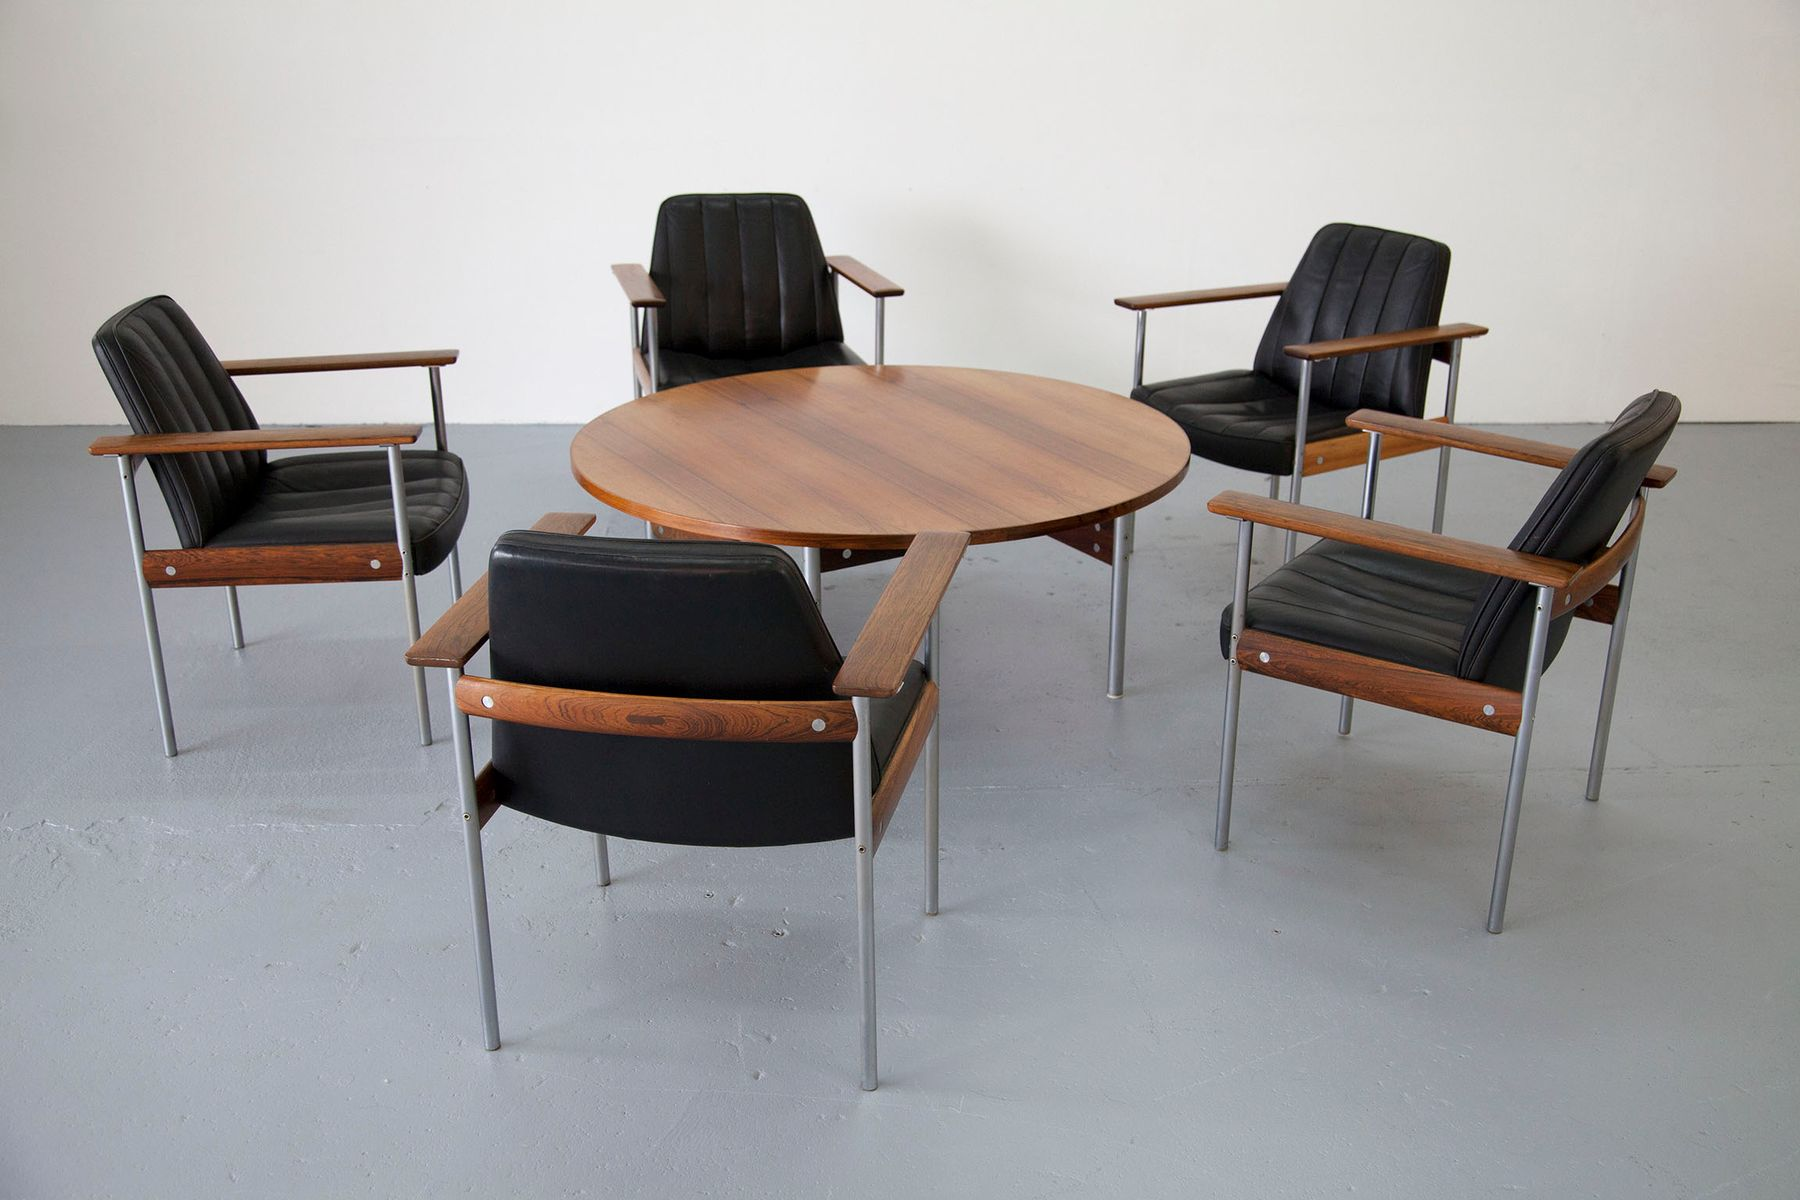 Vintage Lounge Set With Five Chairs Coffee Table By Sven Ivar Dysthe For Dokka